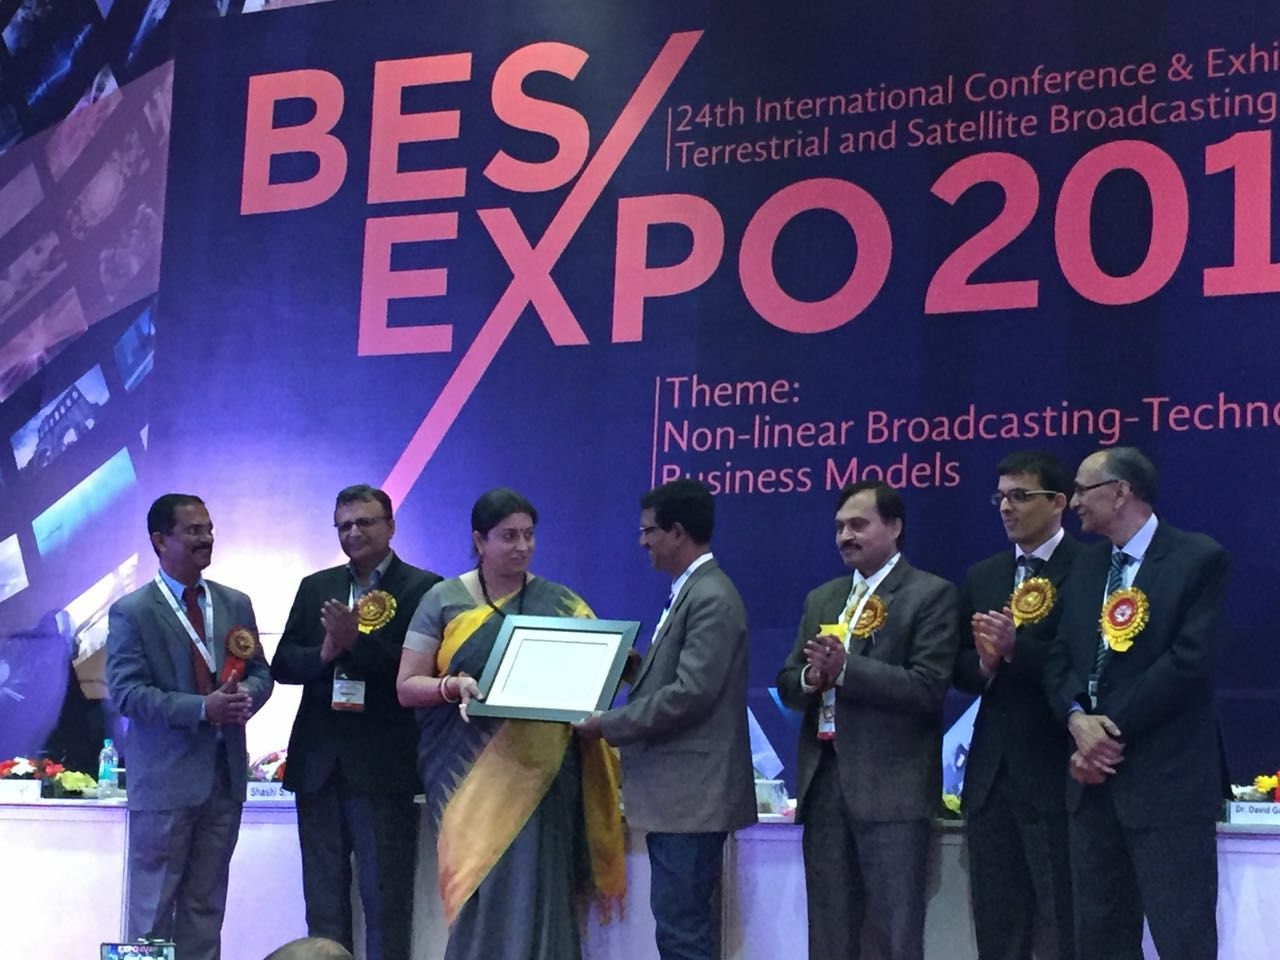 Bes broadcast engineering society india